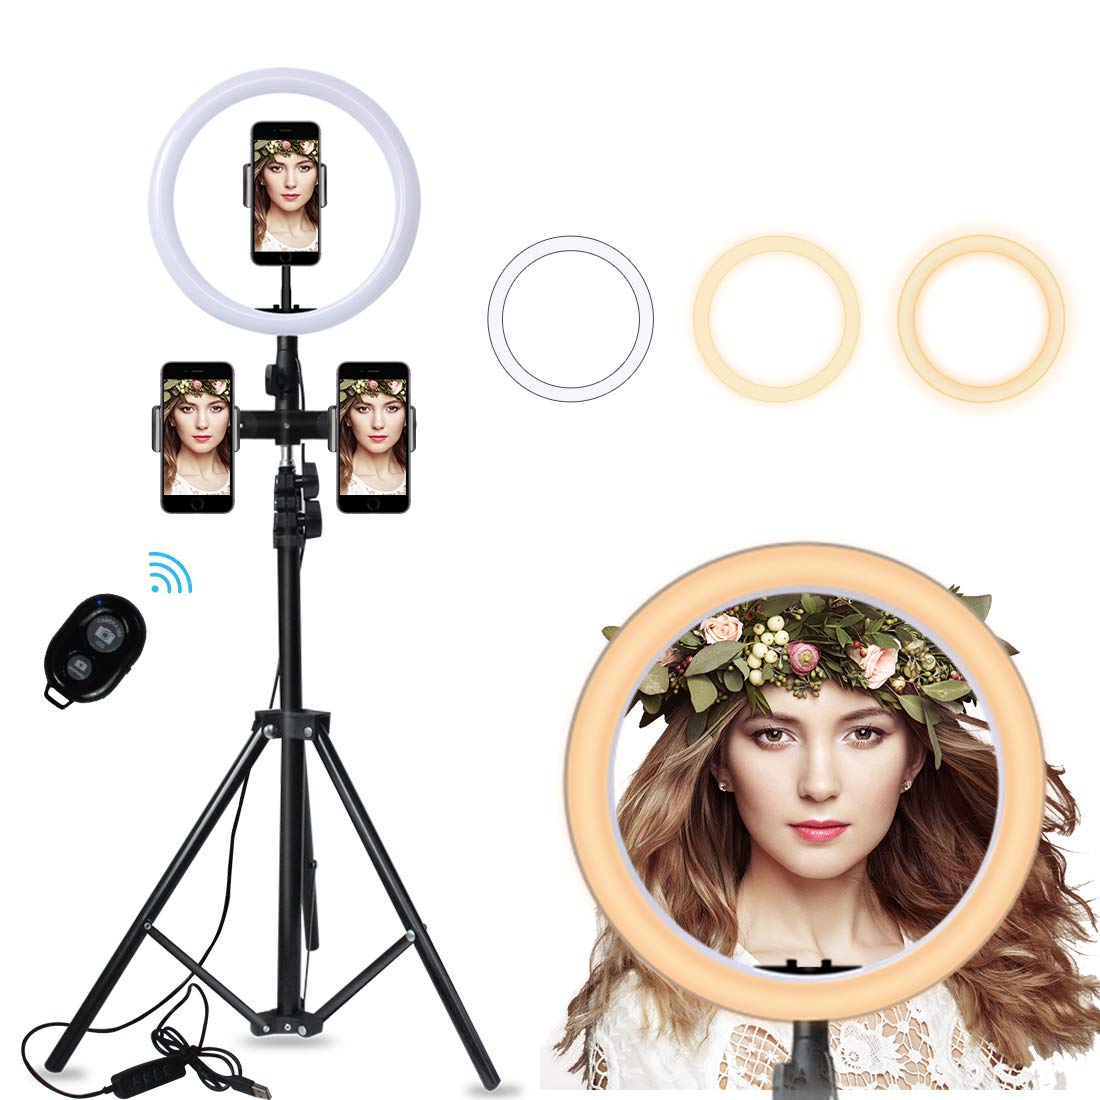 Ring Light - 10 inch Selfie Ring Light with Extendable Tripod Stand and Multifunction Phone Holders for Multi-Platform Live Stream, Makeup, YouTube, Compatible with iPhone/Android by ZAZE